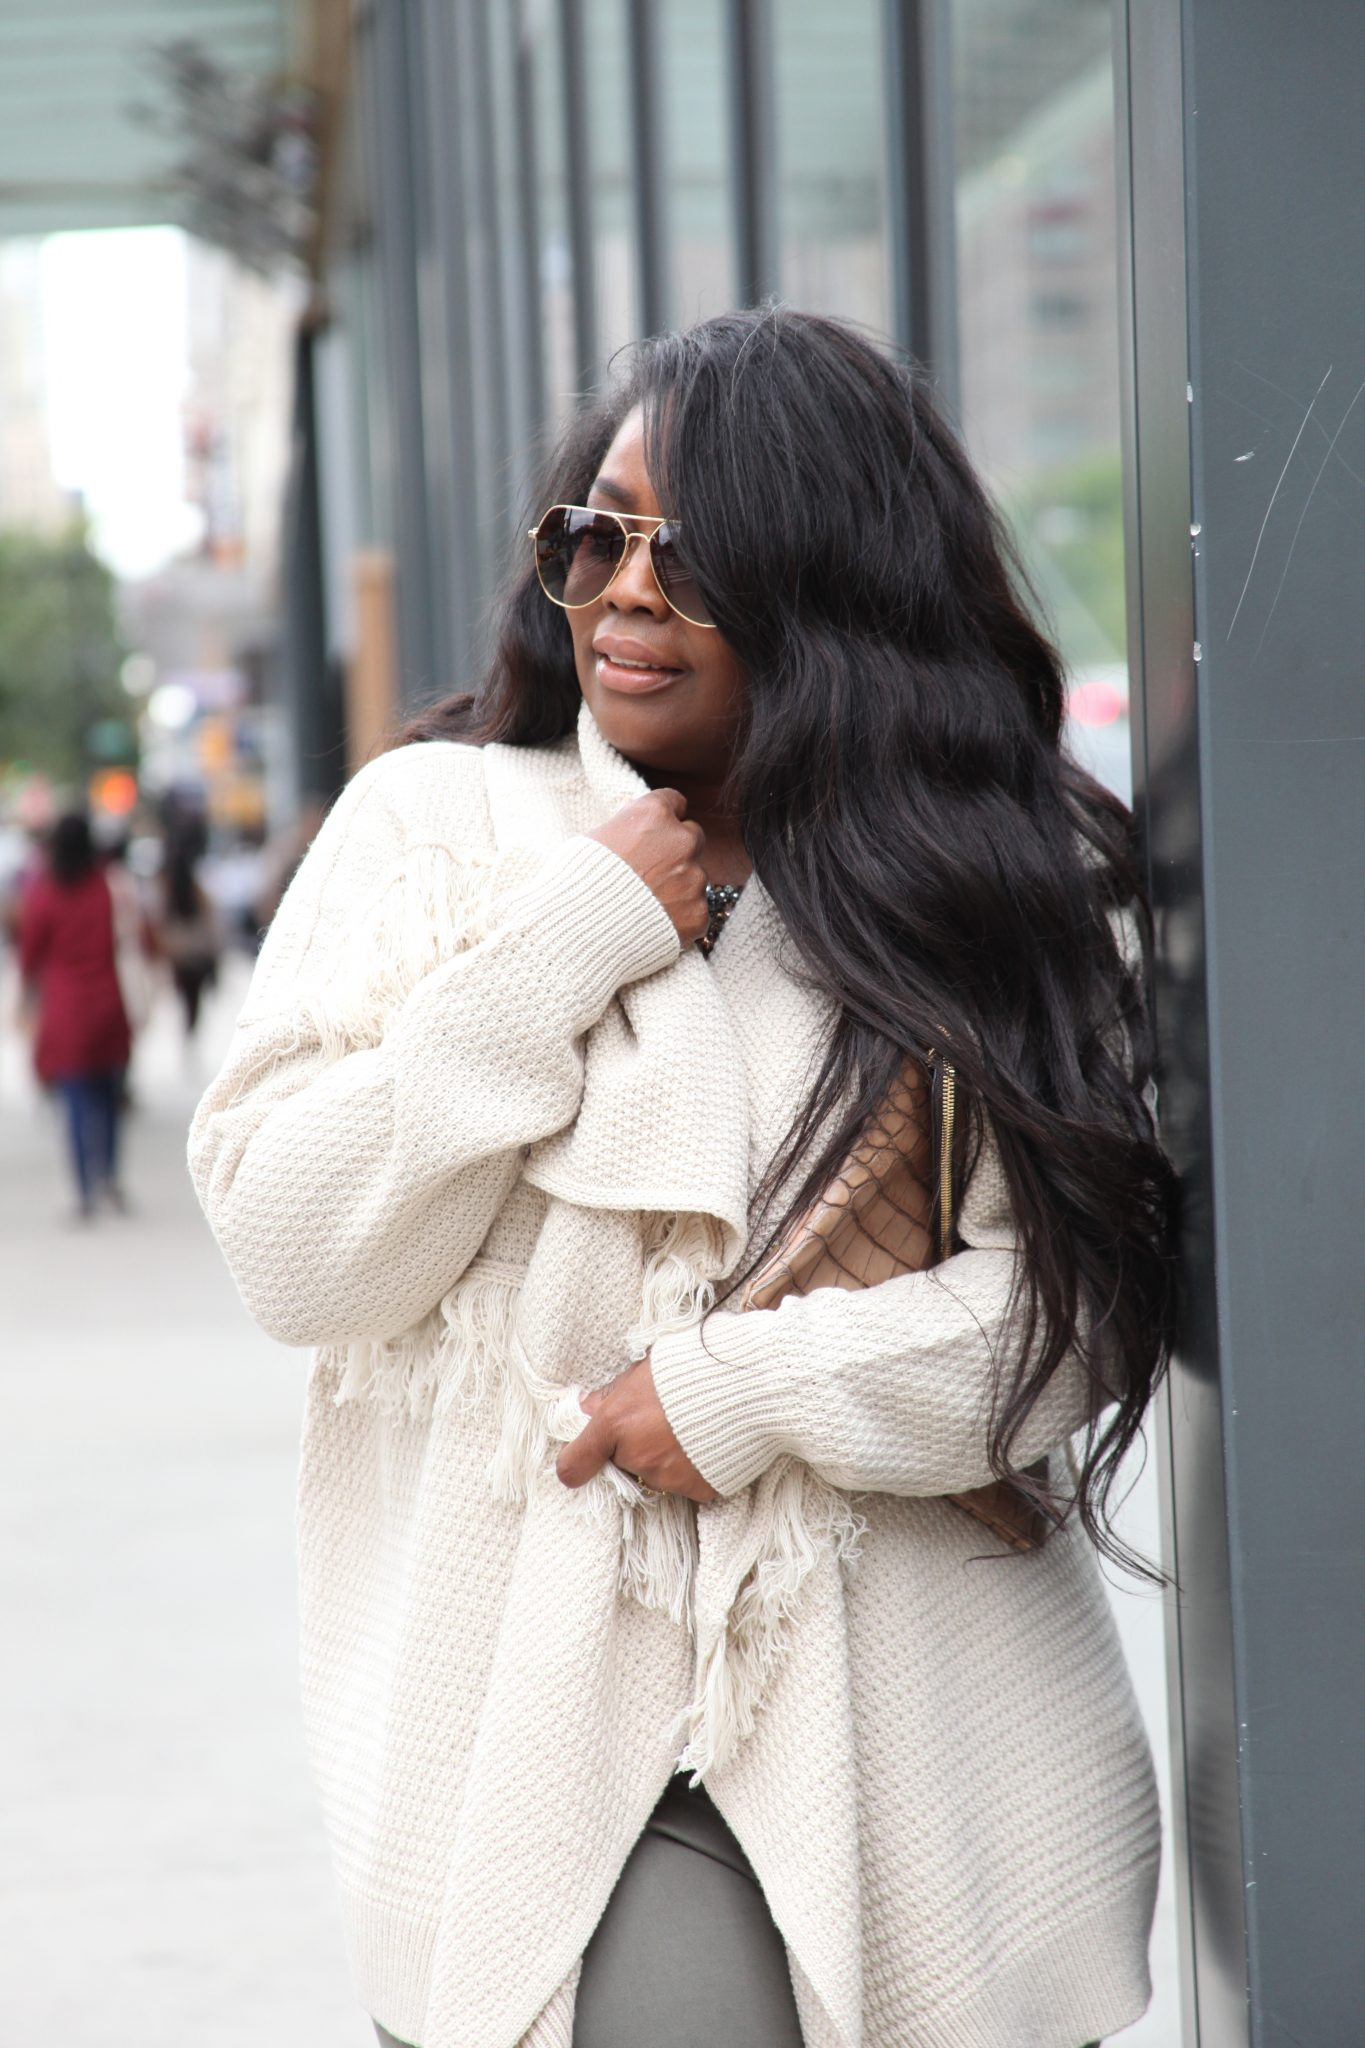 My Style: Fringe Sweater For Fall